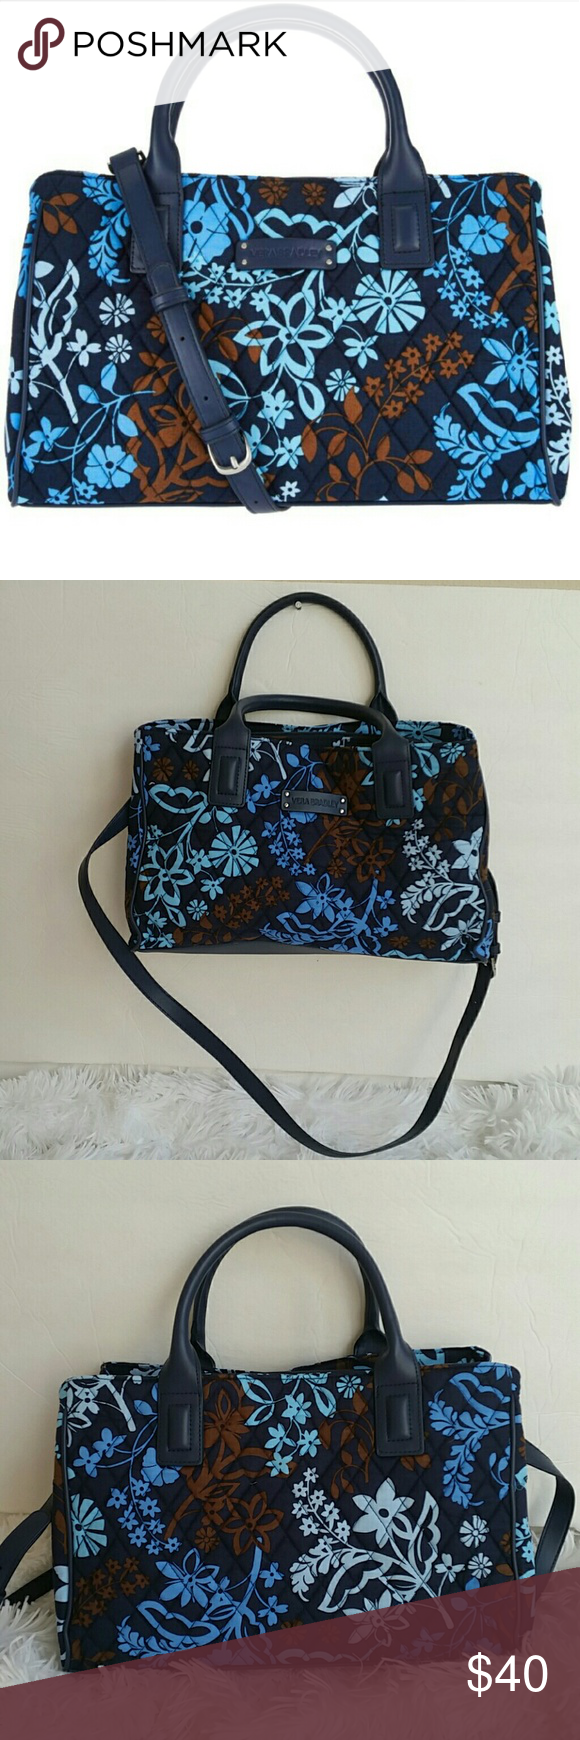 """Vera Bradley Signature Print Triple Compartment Sa Vera Bradley Signature Print Triple Compartment Satchel.preown. in awesome condition. Color java floral.  Measures approximately 13""""W x 8-1/2""""H x 4""""D with a 19"""" to 22"""" strap drop and 4-1/2"""" handles; weighs approximately 15 ozs Facing/lining 100% cotton; filling/trim 100% polyurethane; pockets 100% polyester pockets; steel hardware. Vera Bradley Bags Satchels"""